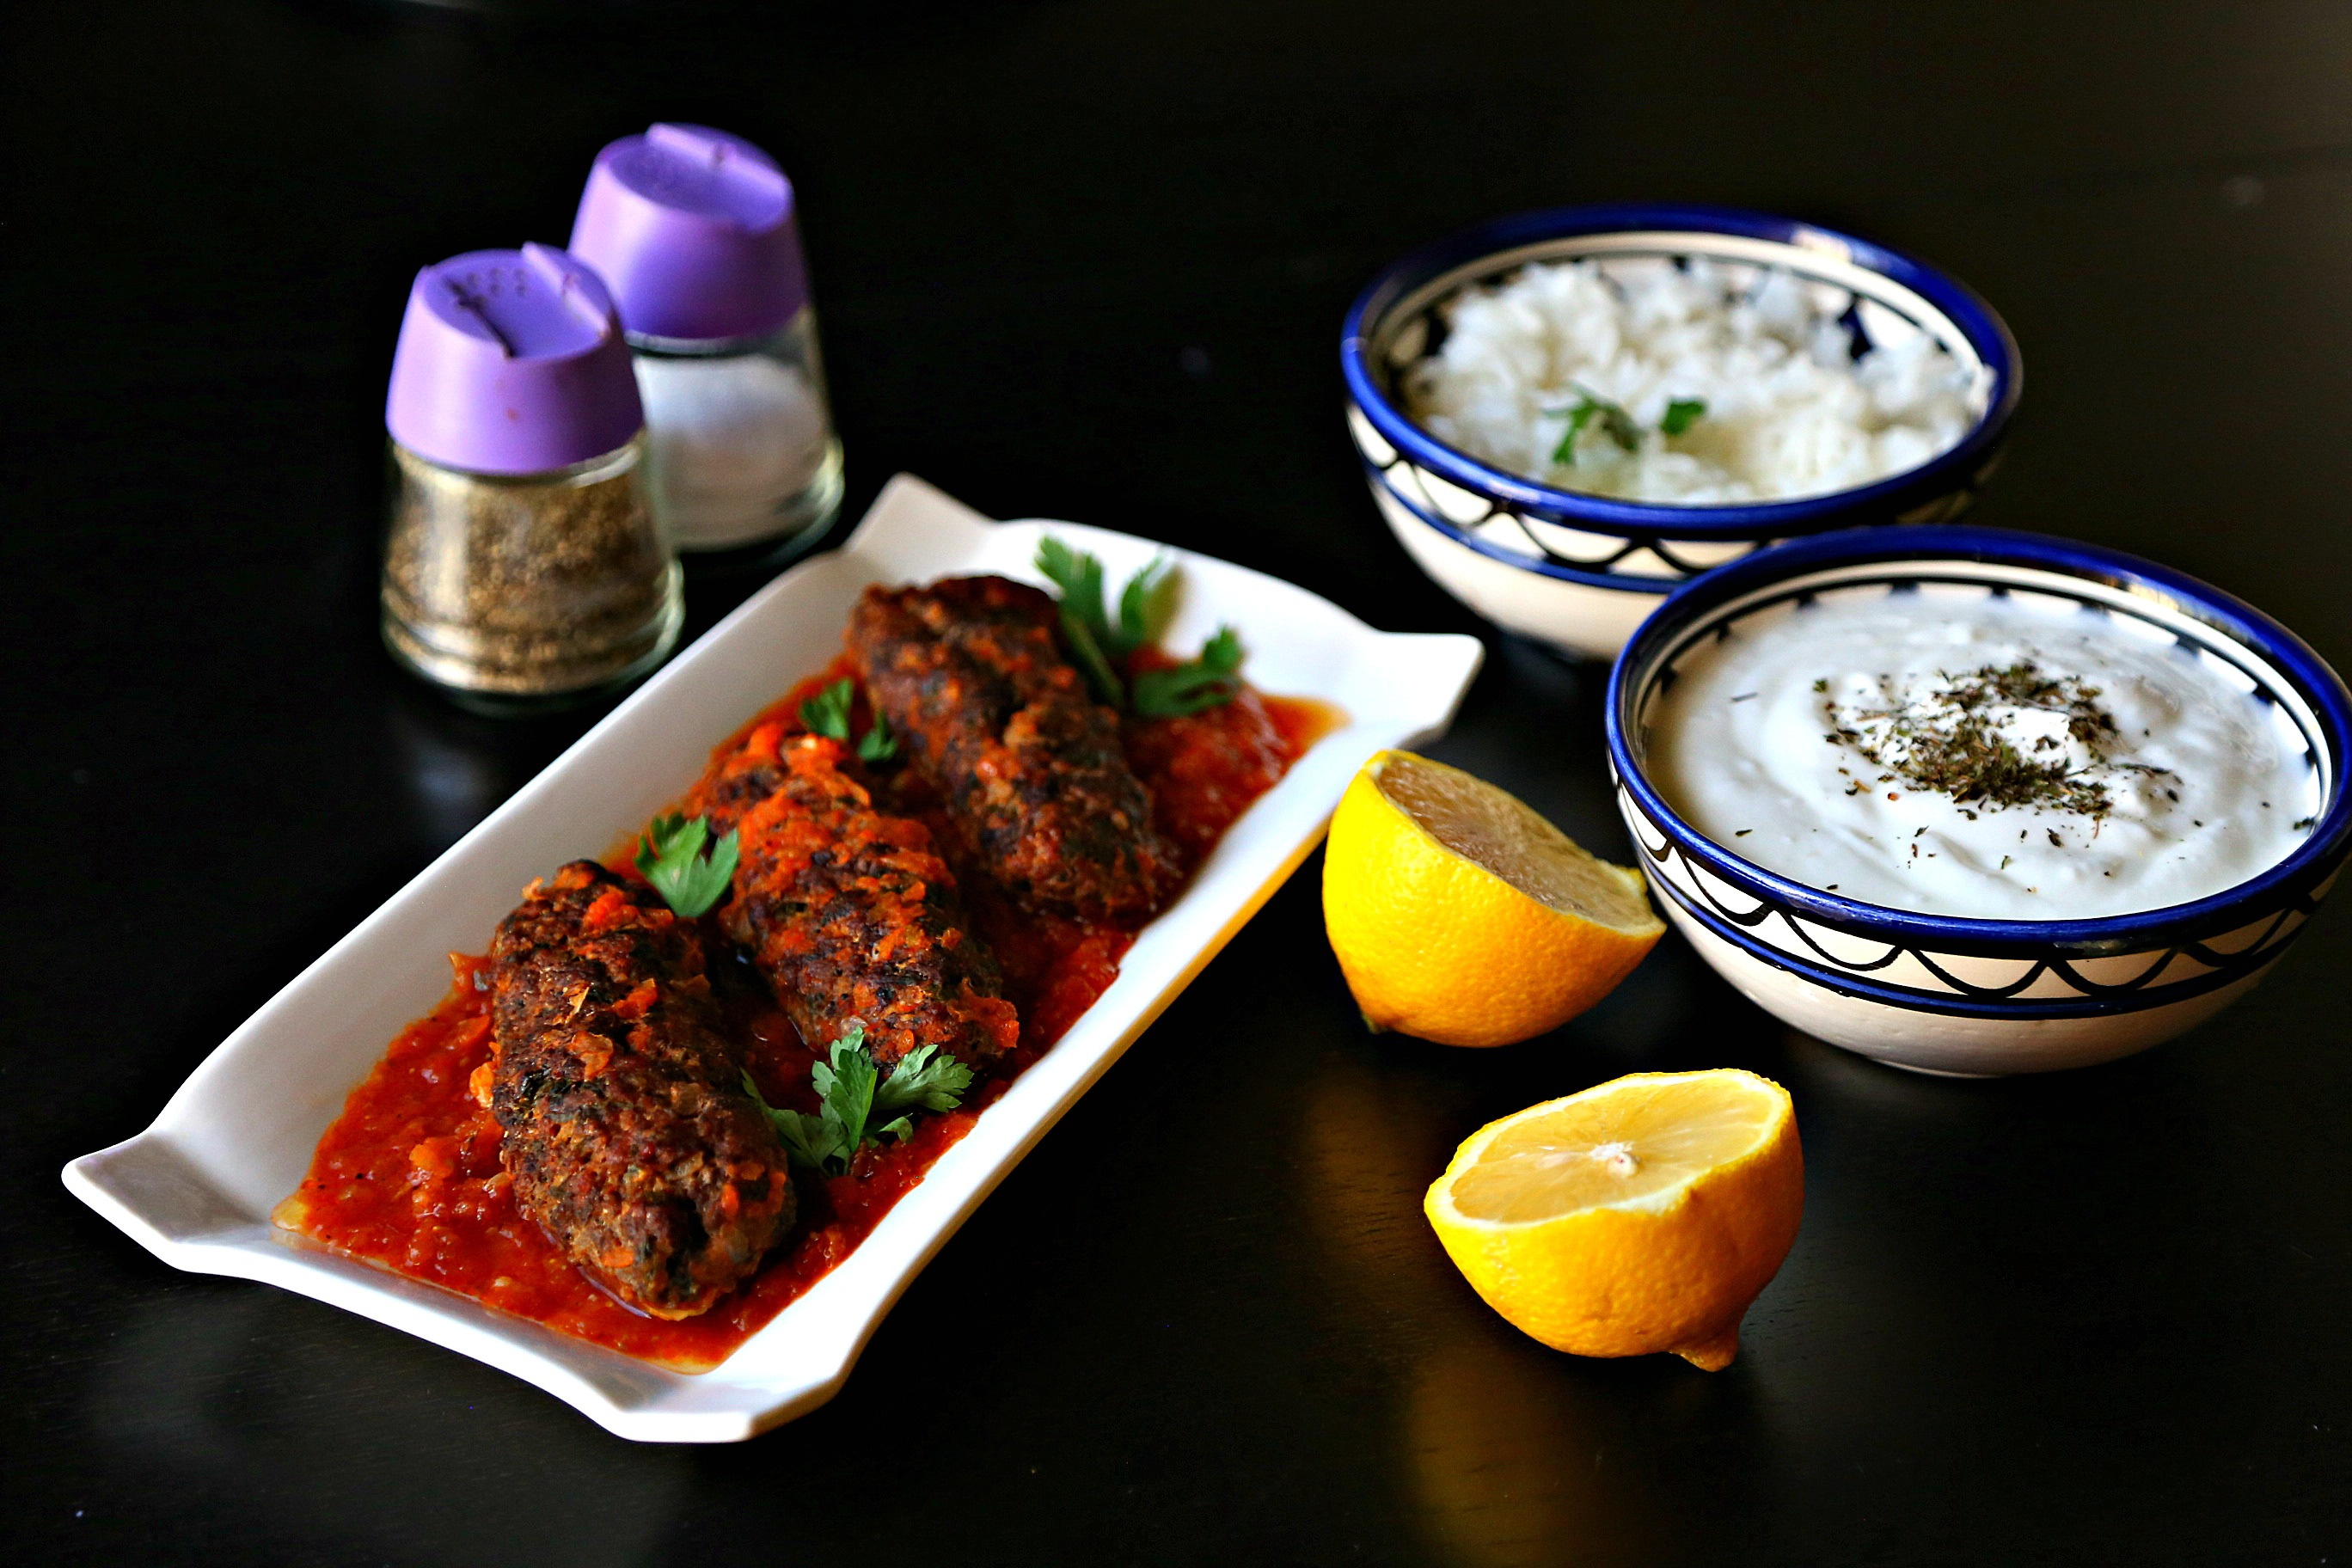 Turkish kofta with rice and yogurt